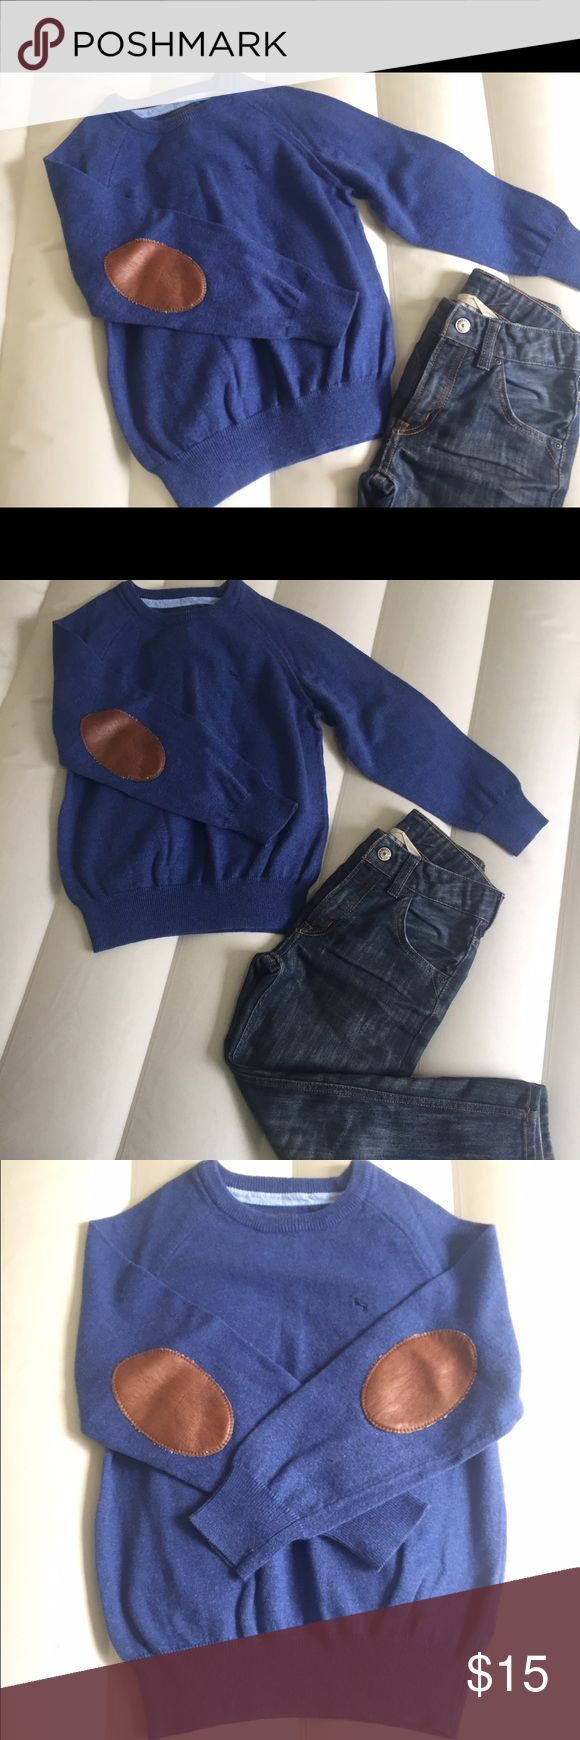 Bundle: boys sweater and jeans 2 pc lot: boys blue pullover v-neck sweater and straight leg jeans in size 6-7 years. Noted on jeans some wear in the knee area, but no rips or stains. LOGG Bottoms Jeans